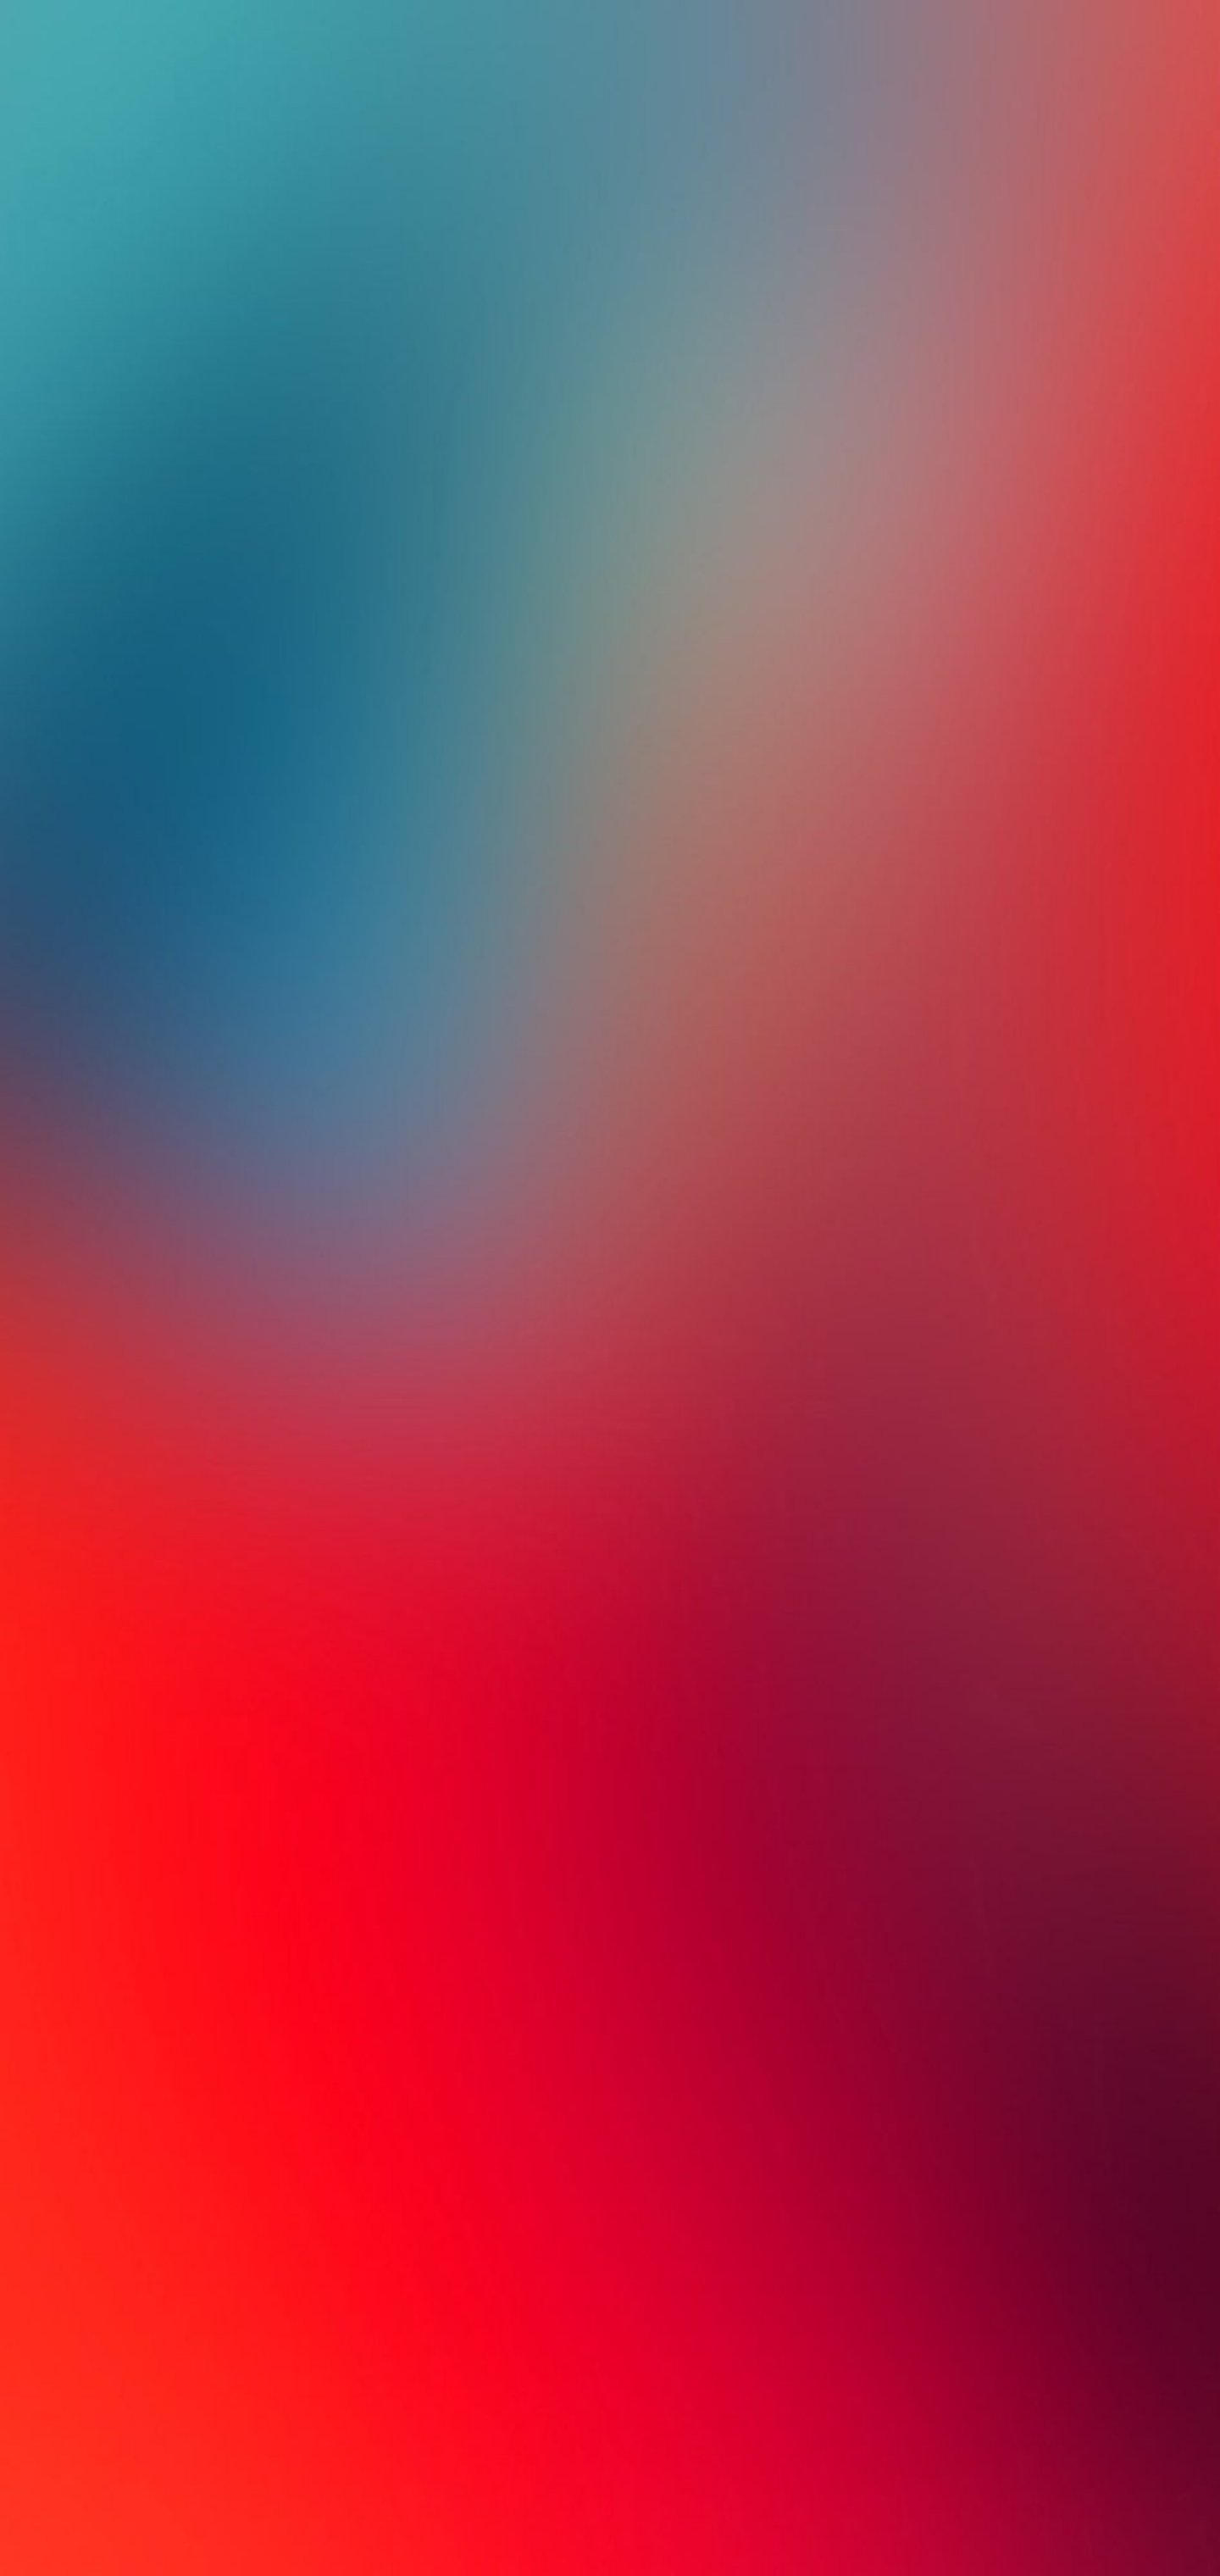 iPhone 12 Pro Max Wallpapers 1440x3040